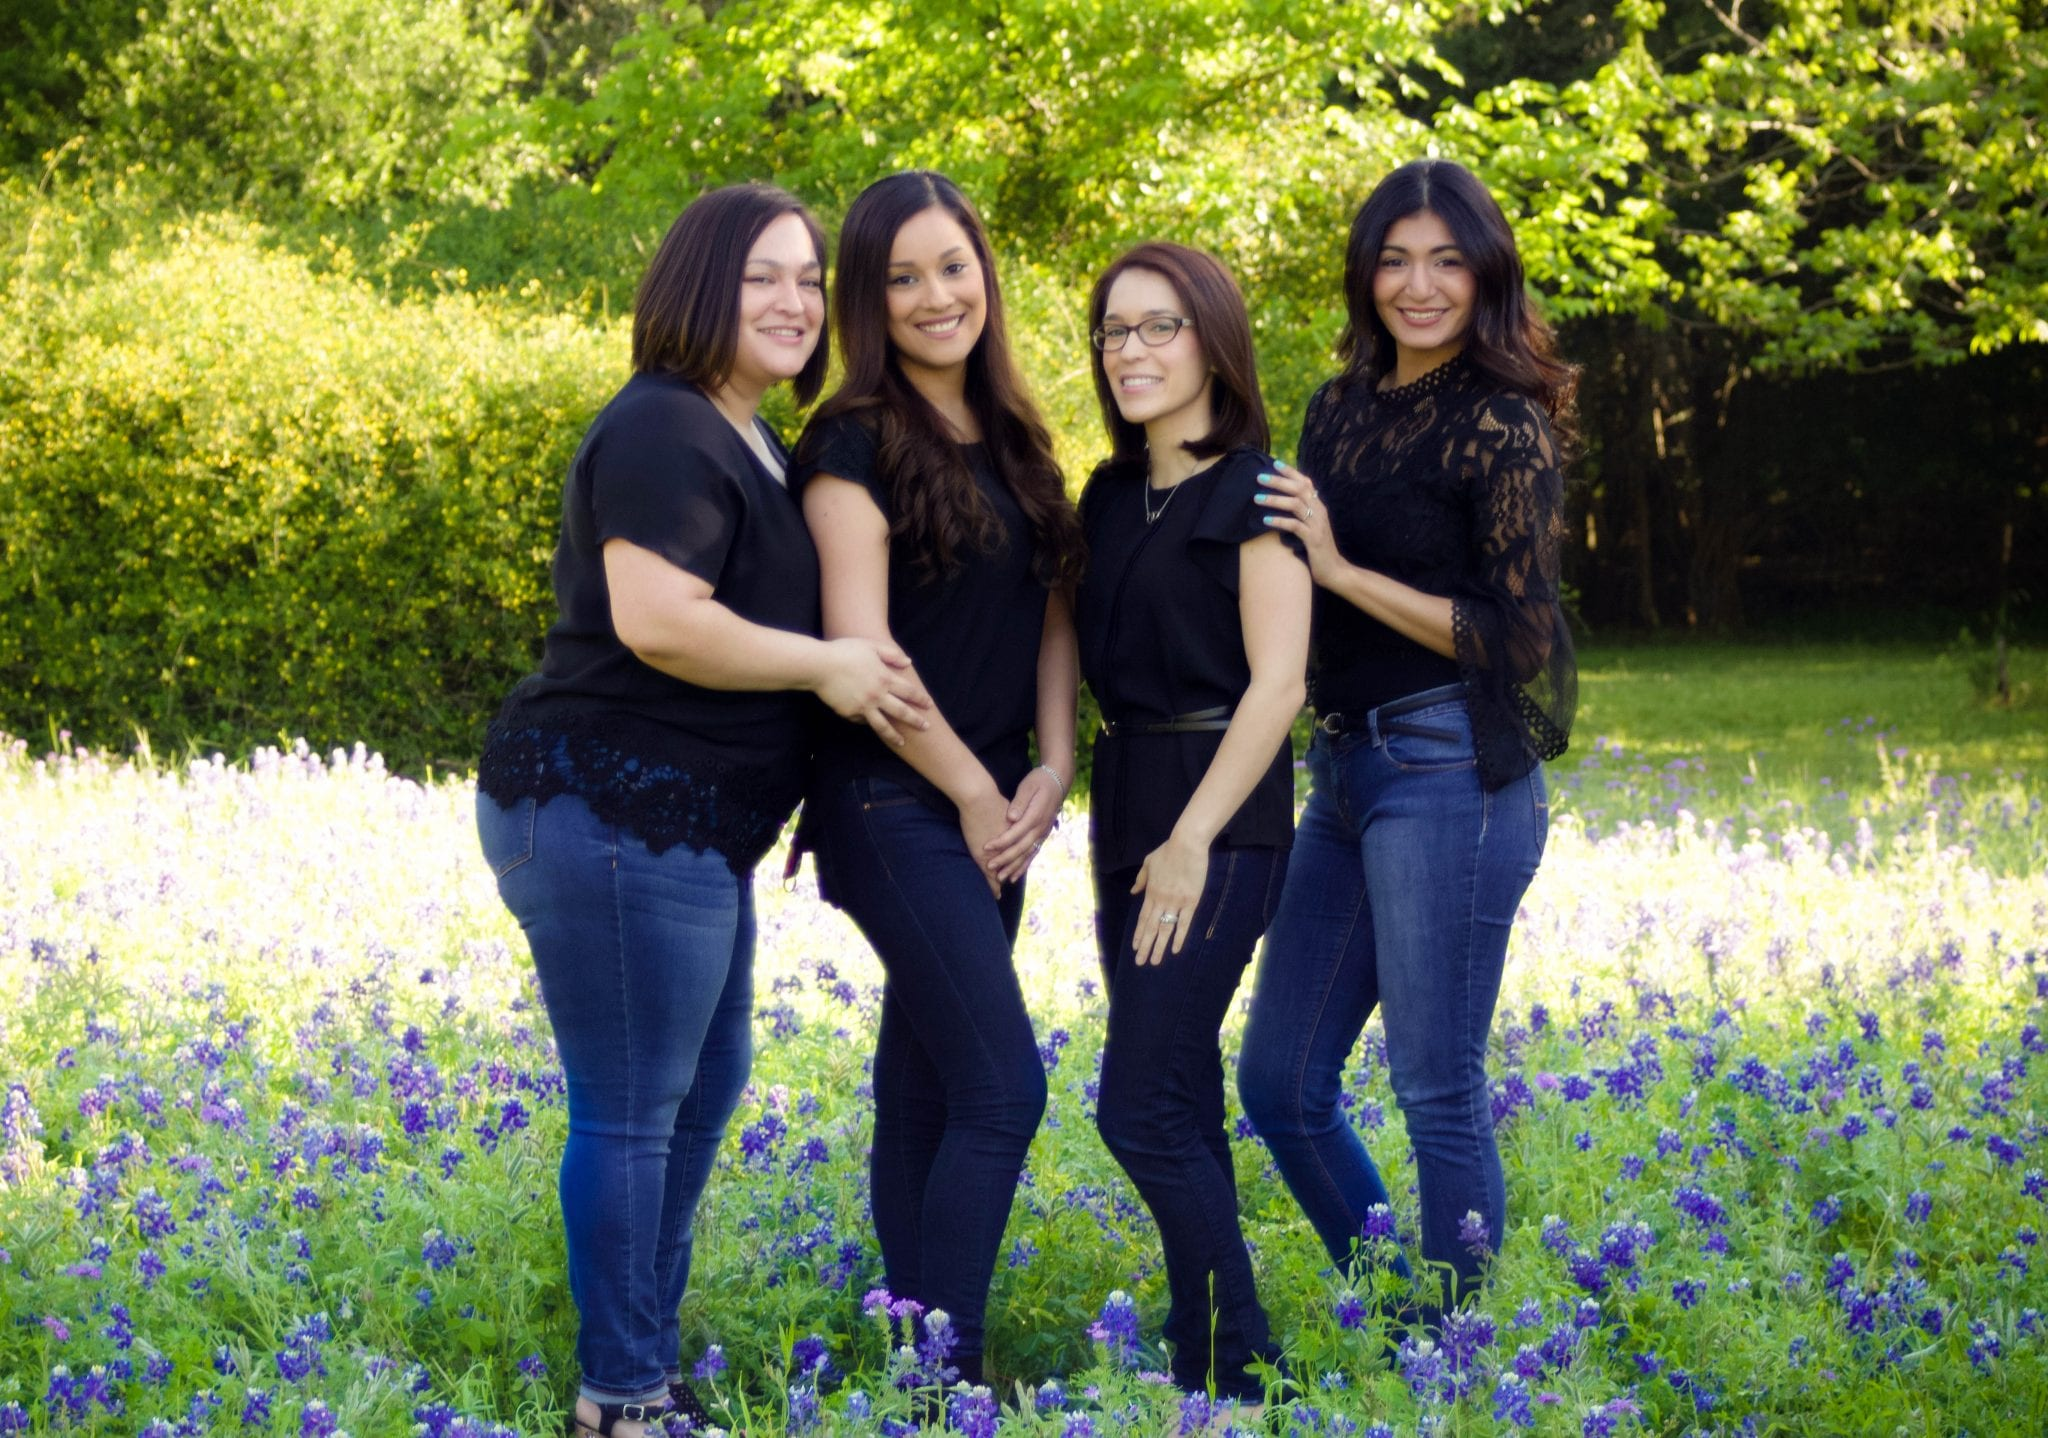 Dental Assistant Recognition Week 2021 Aqua Springs Blog Post It's Dental Assistant Recognition Week March 7-13 is National Dental Assistant Recognition Week. Because of that, we want to take the time to recognize our dental assistants here at Aqua Springs Dental in san marcos, tx Aquaspringsdental12-1